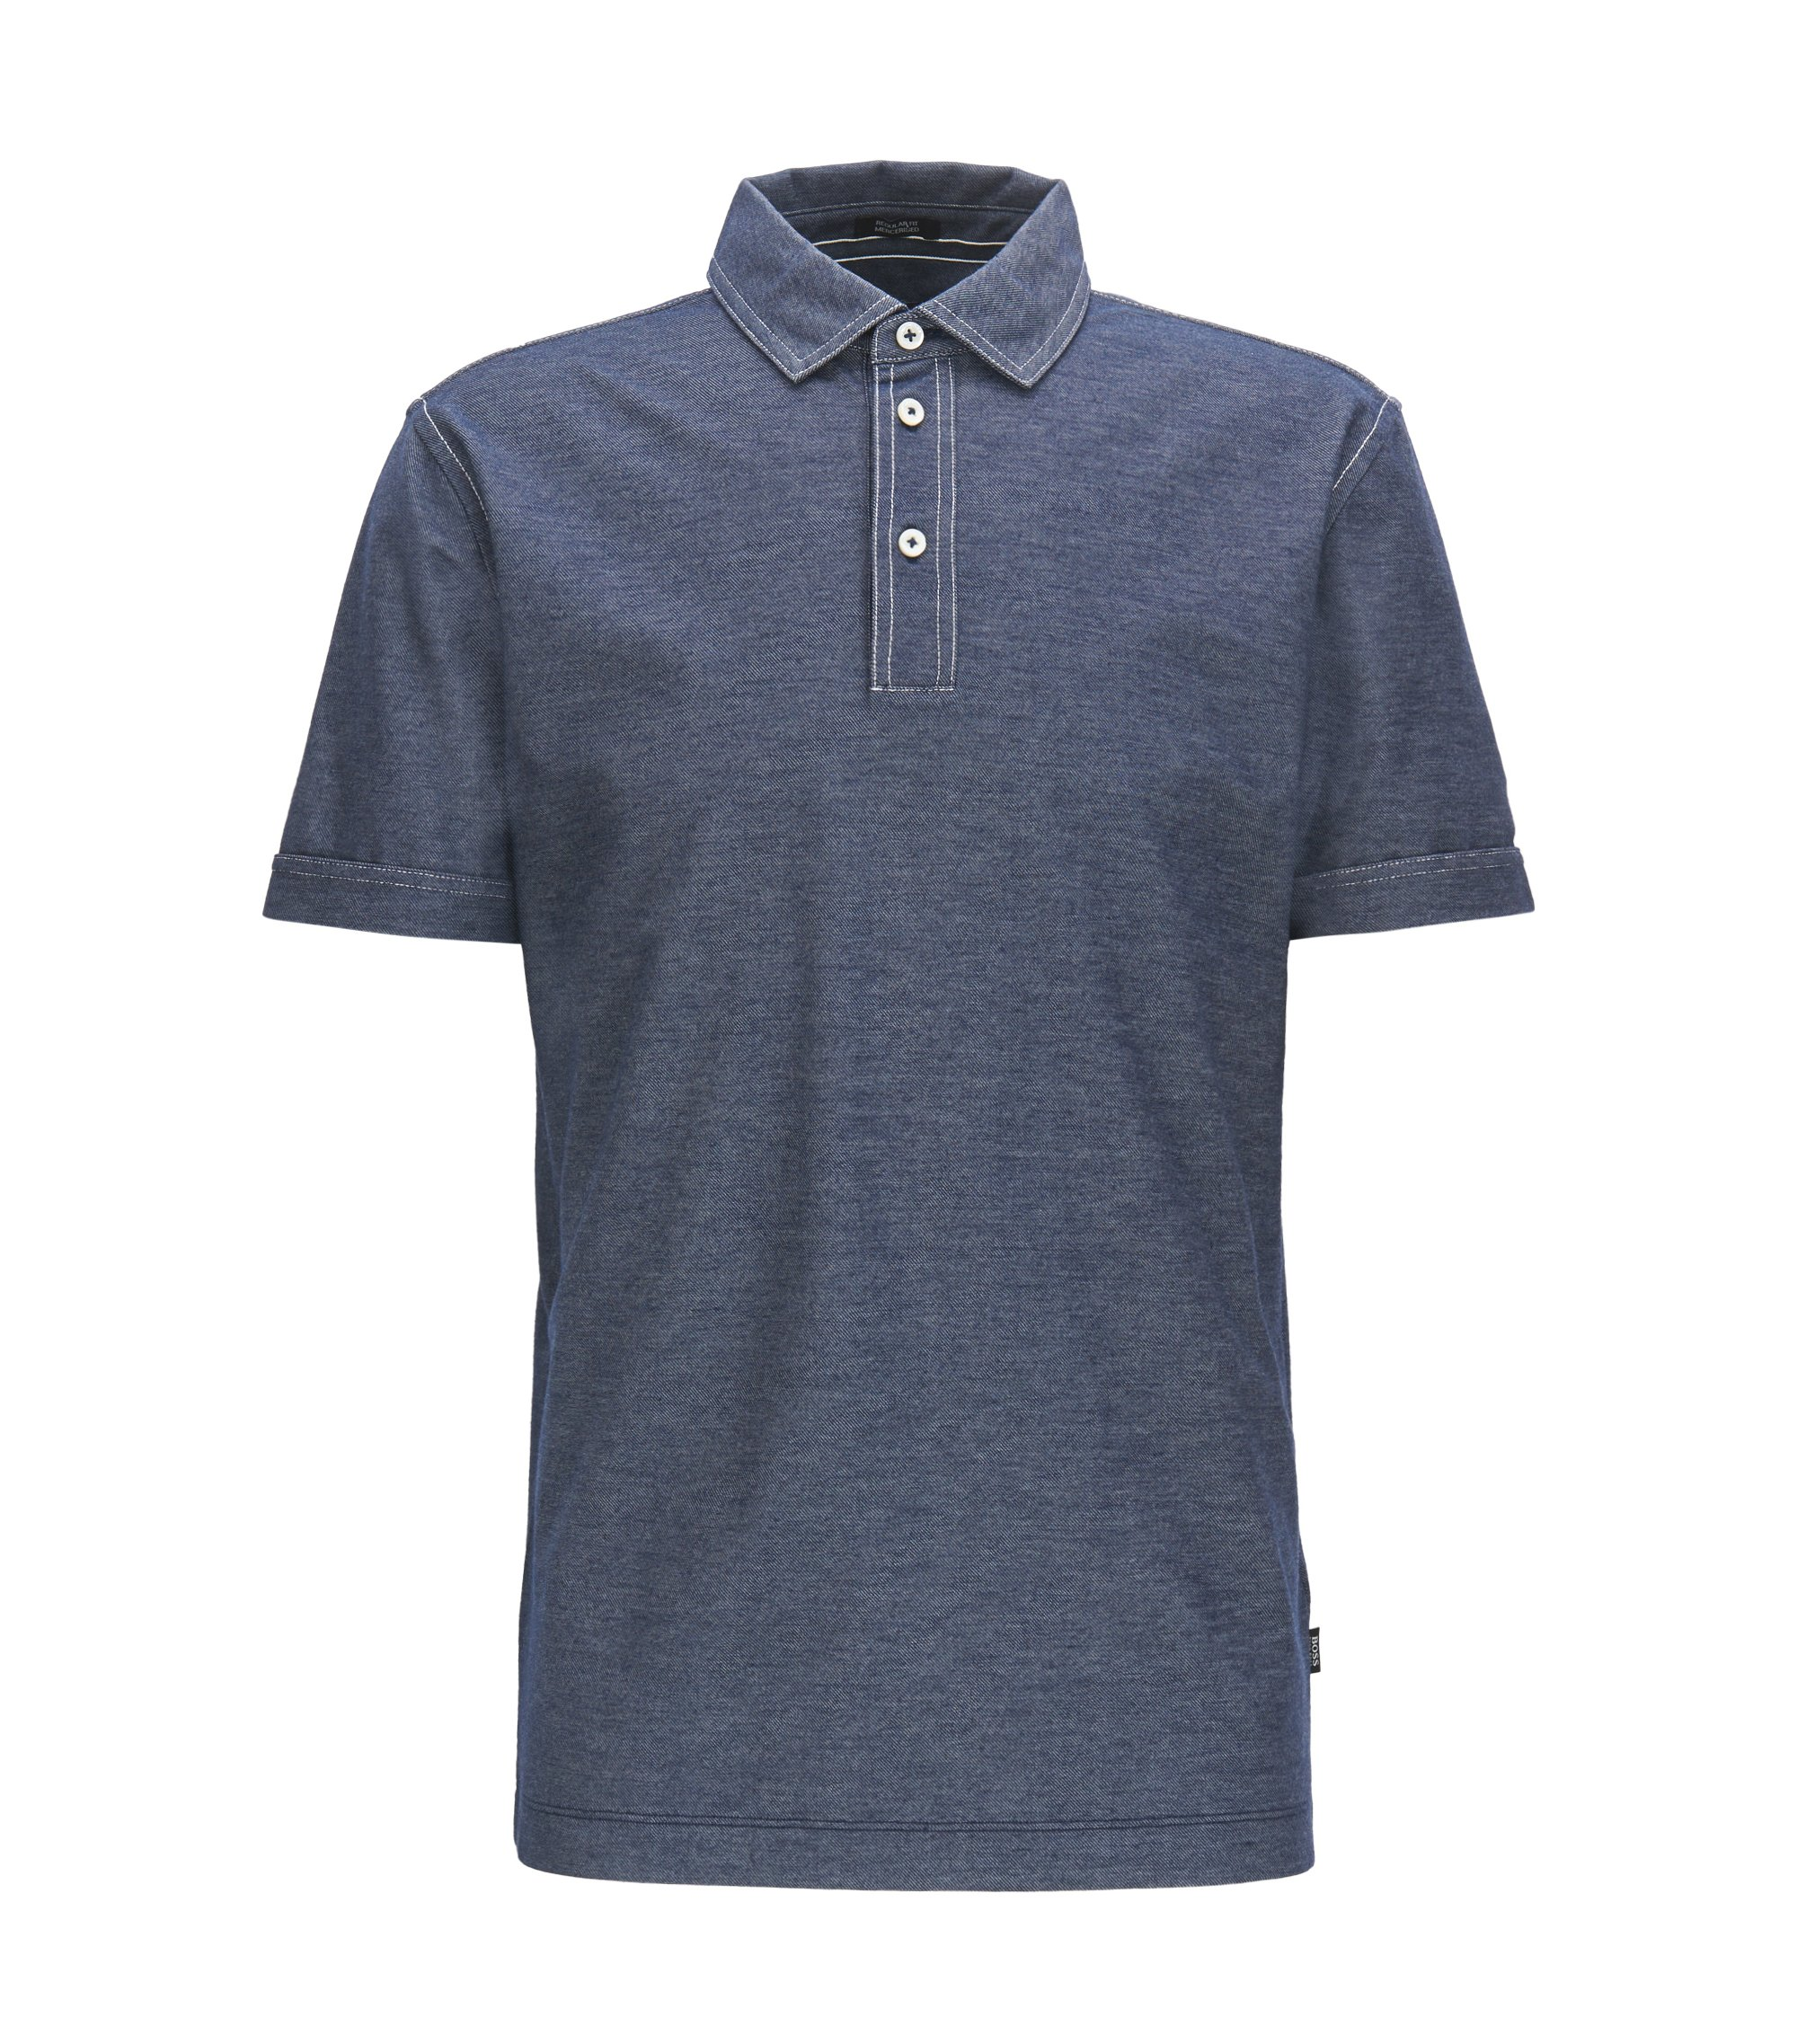 Cotton Blend, Regular Fit | Press, Dark Blue